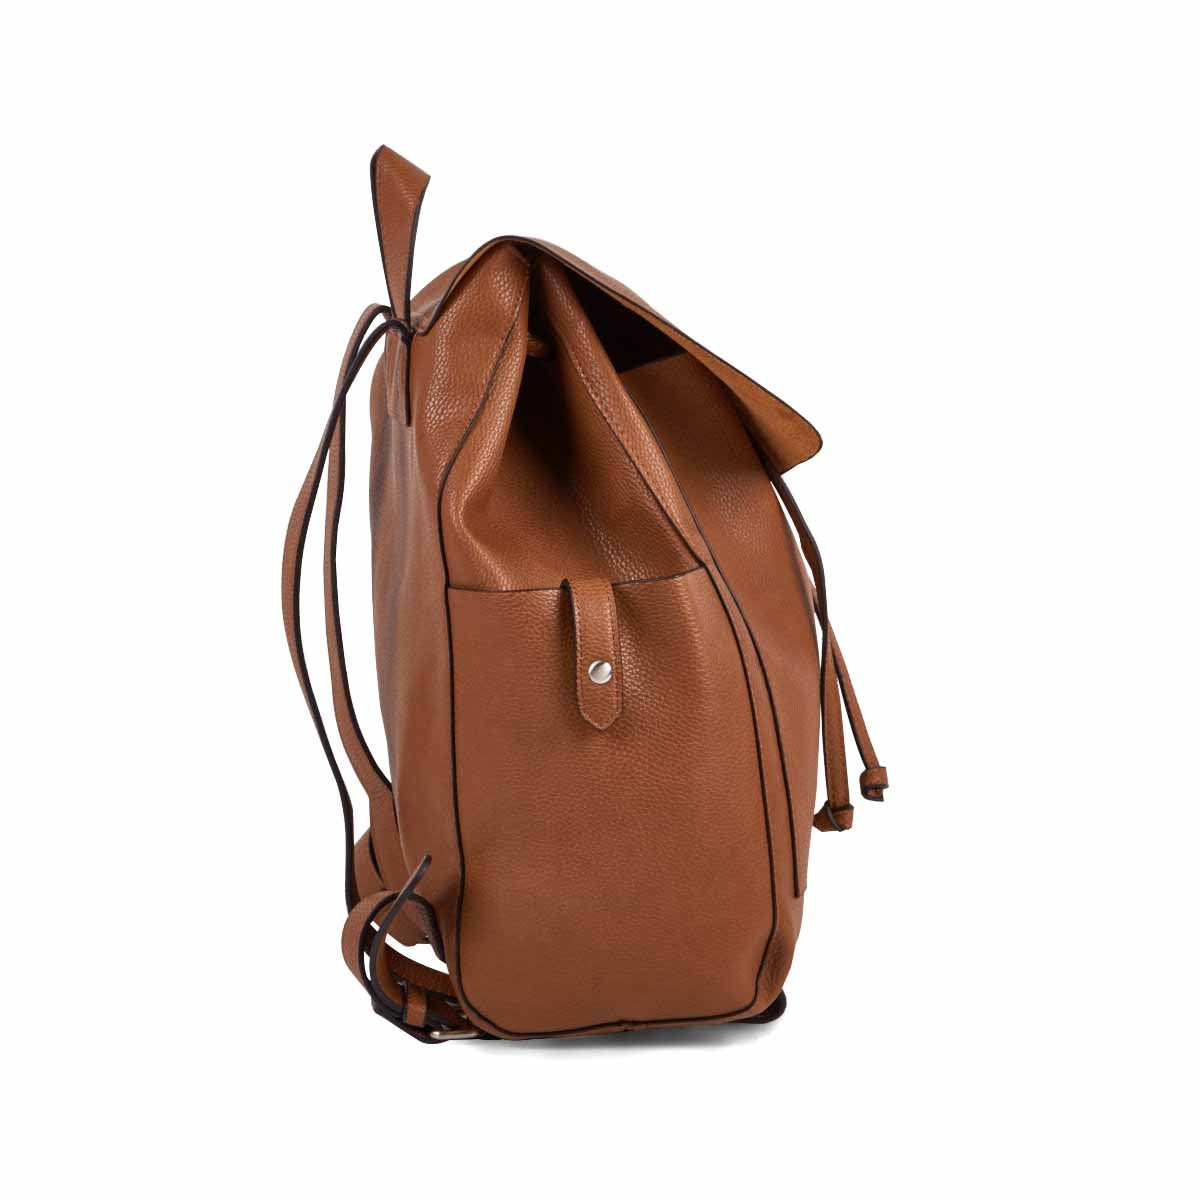 Lds cognac draw string w/flap backpack